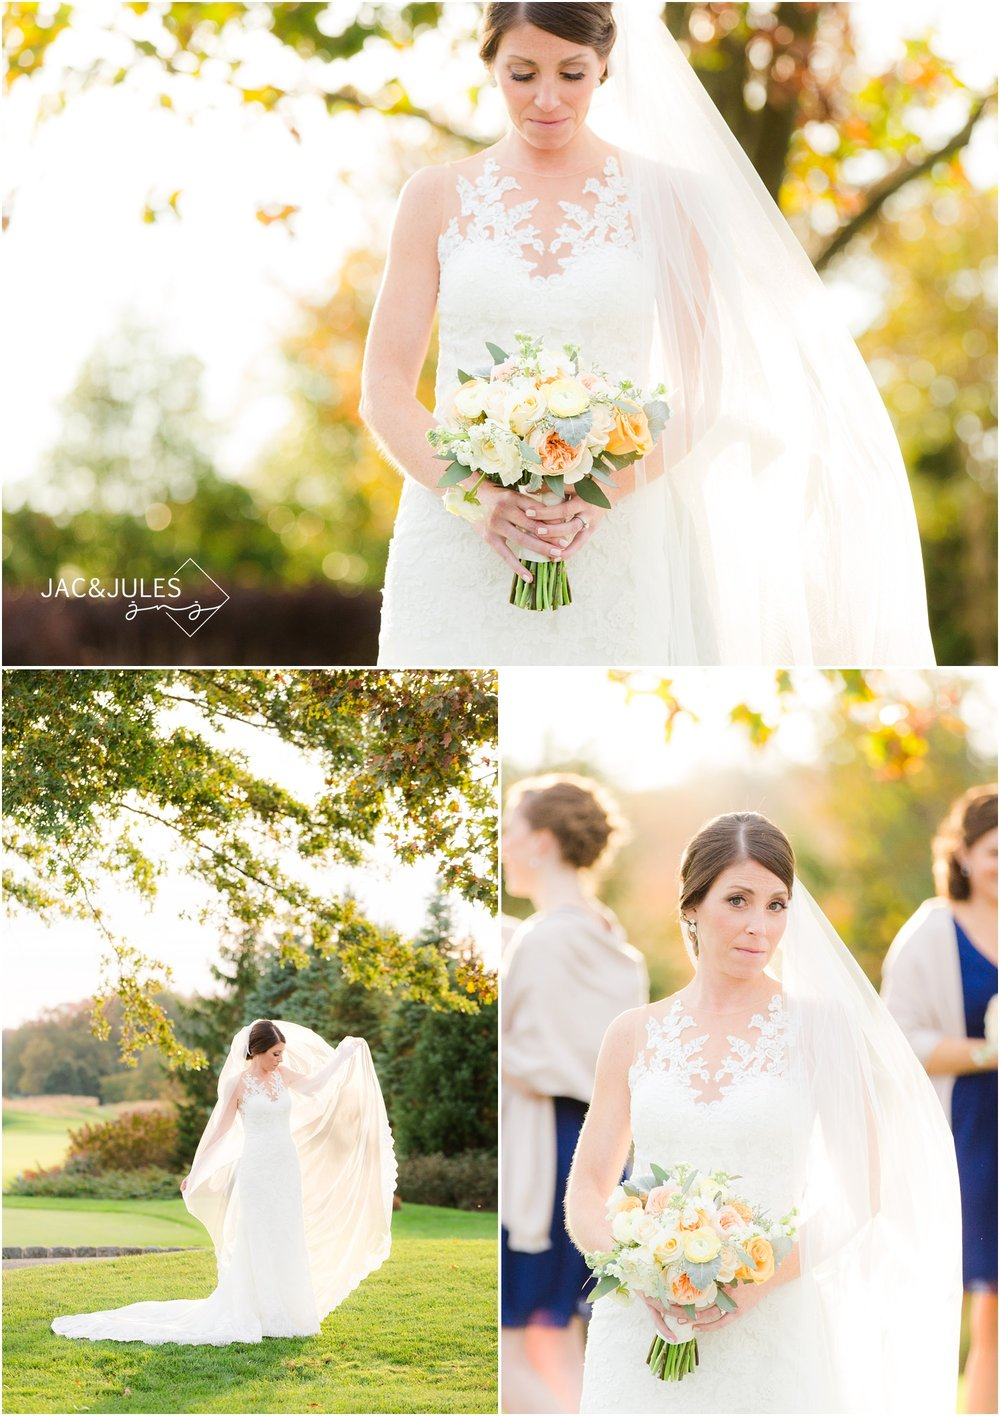 Bridal portraits at Eagle Oaks Golf and Country Club in Farmingdale, NJ.